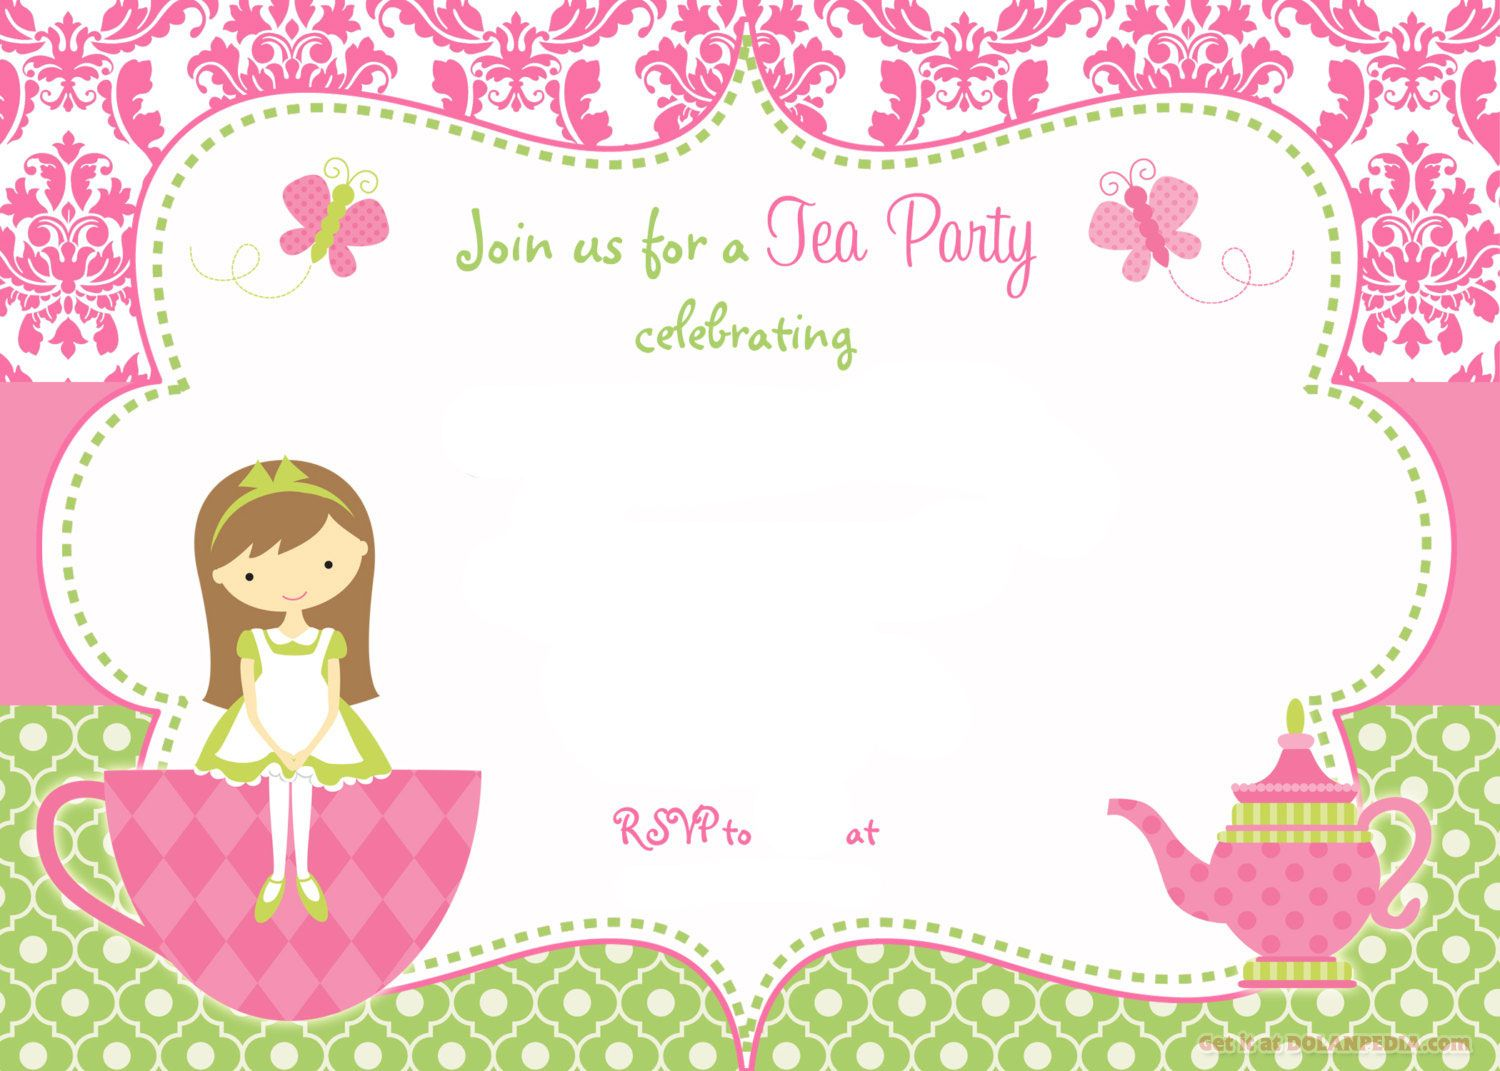 image about Free Printable Tea Party Invitation Templates called Absolutely free Printable Tea Celebration Invitation Template for Free of charge